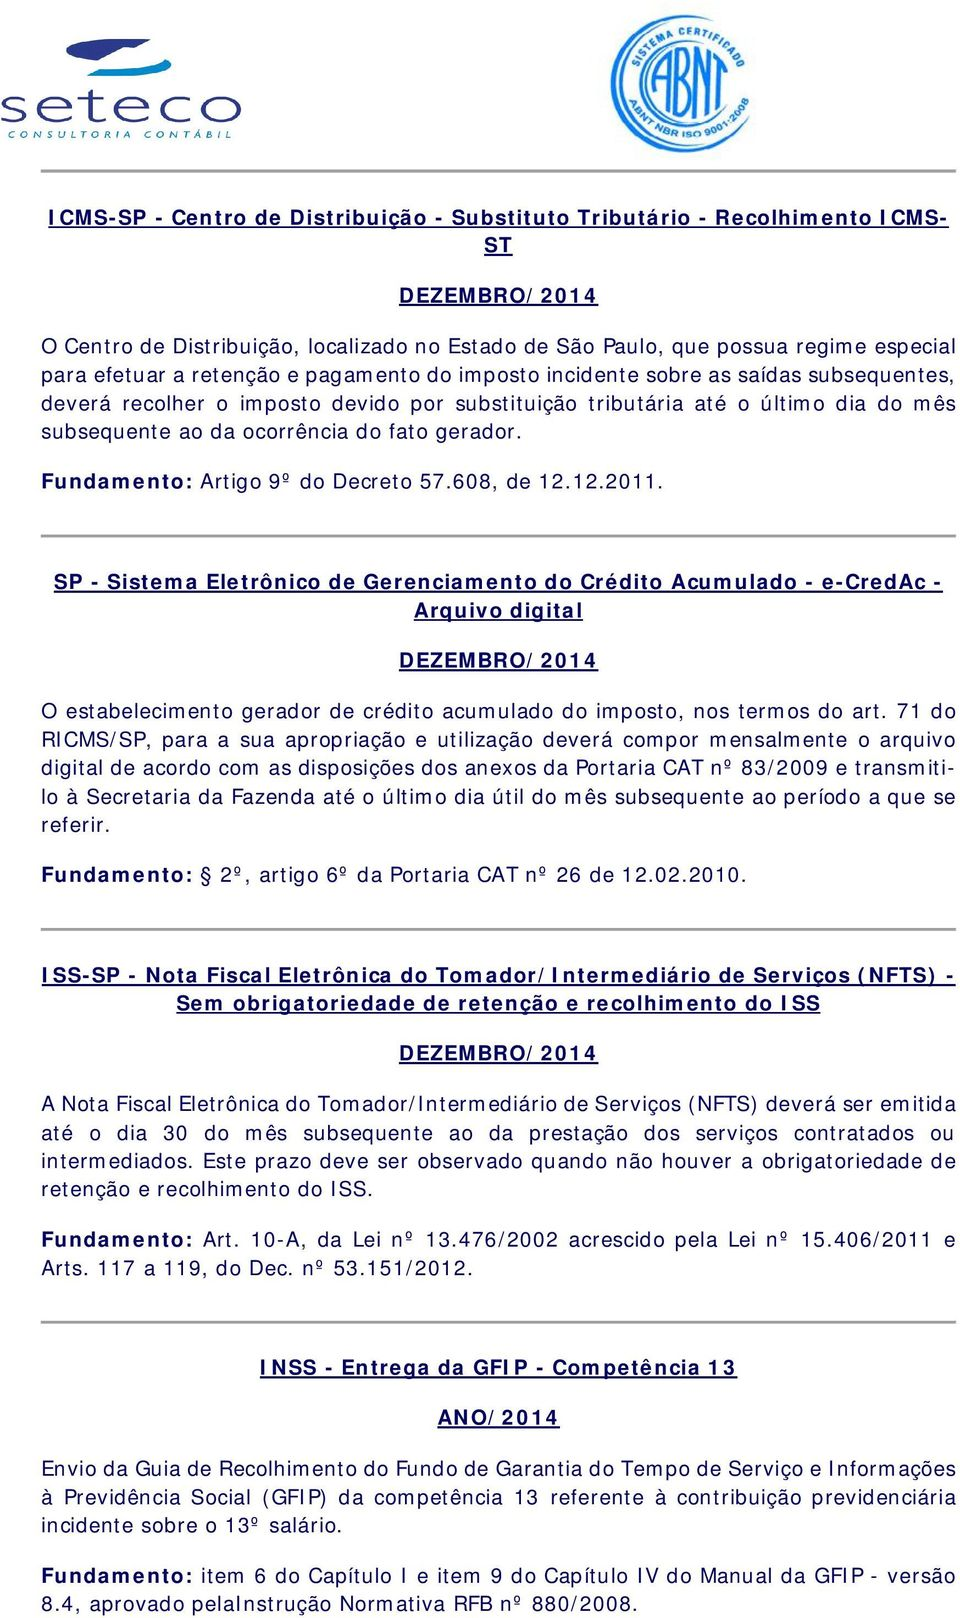 Fundamento: Artigo 9º do Decreto 57.608, de 12.12.2011.